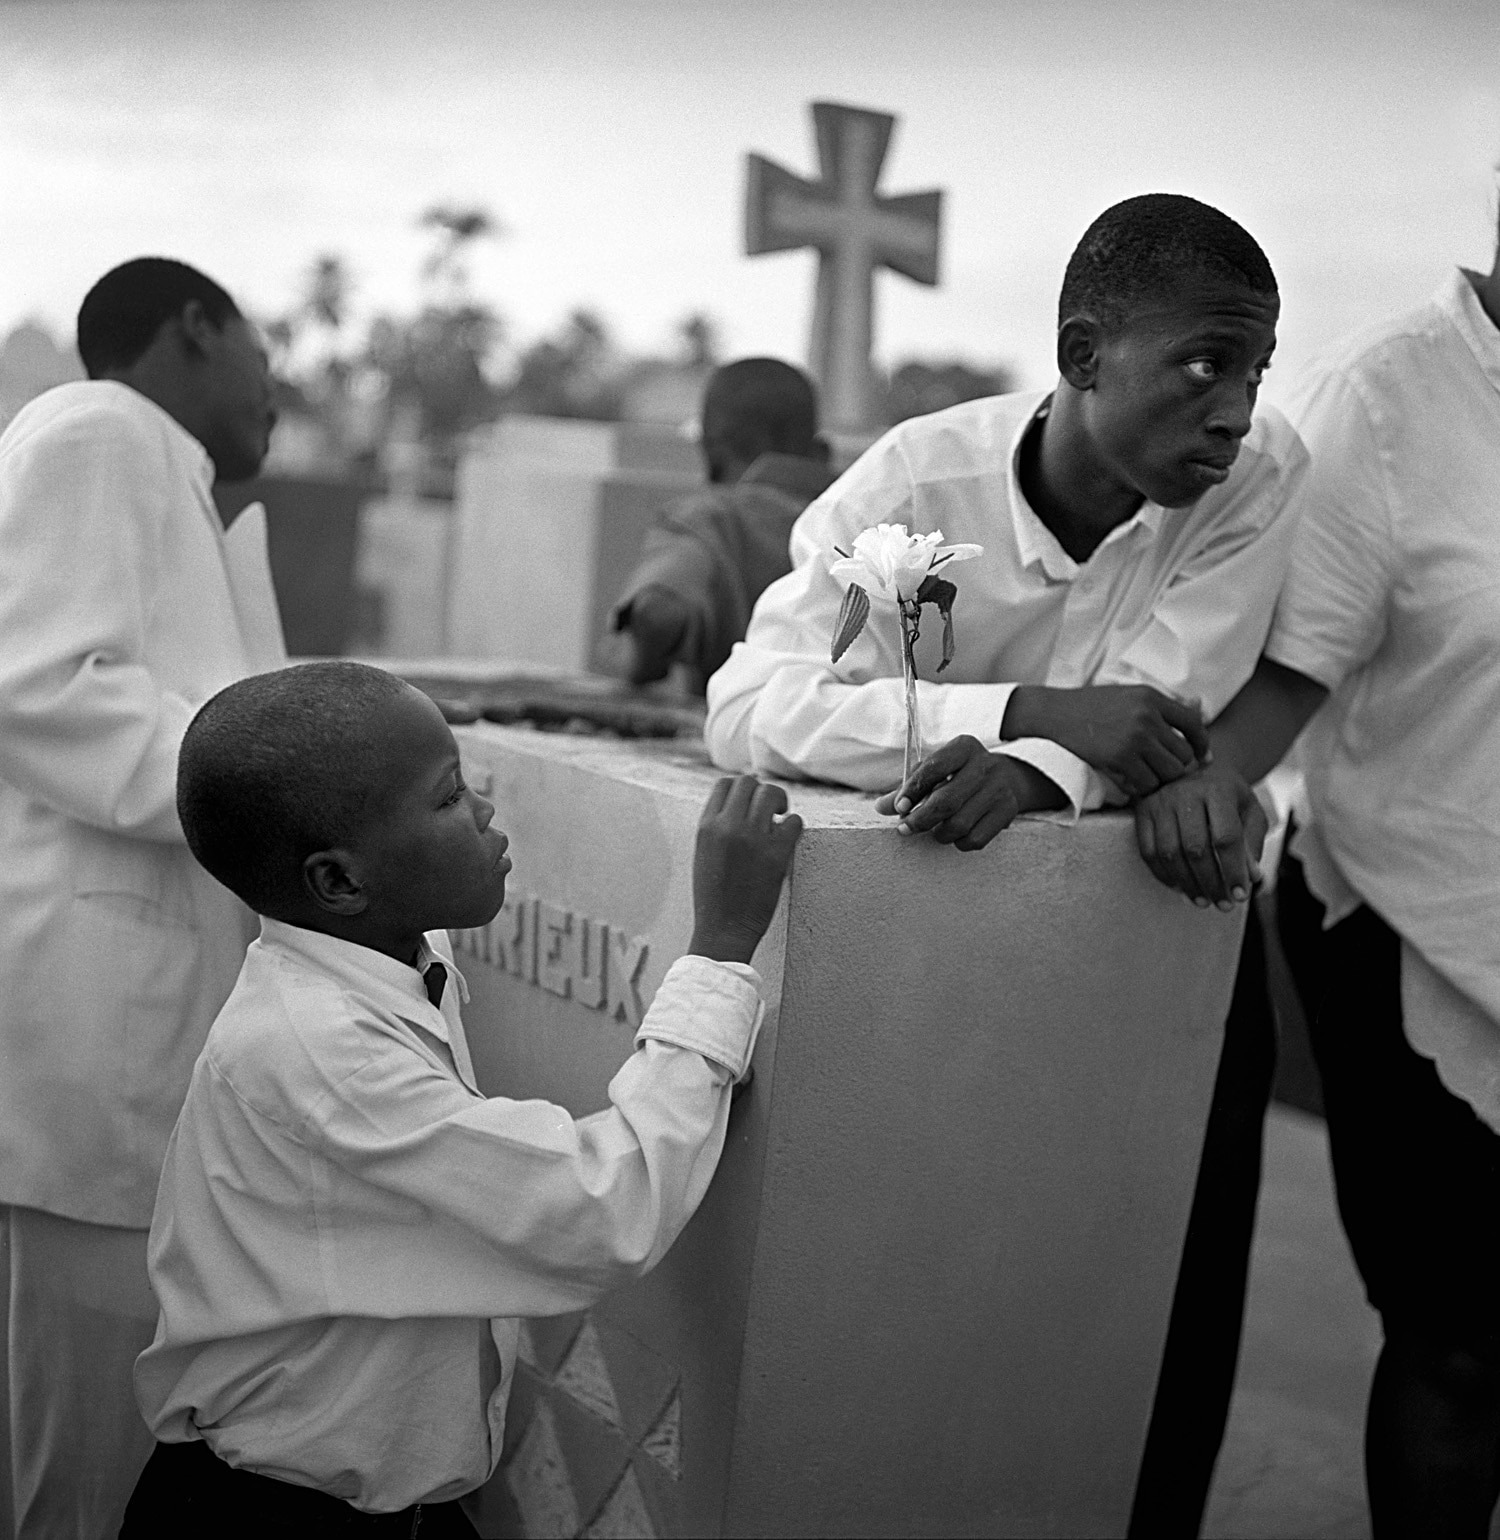 Thomas Kern  A funeral ceremony at Port-au-Prince in Haiti (December 16, 2005).